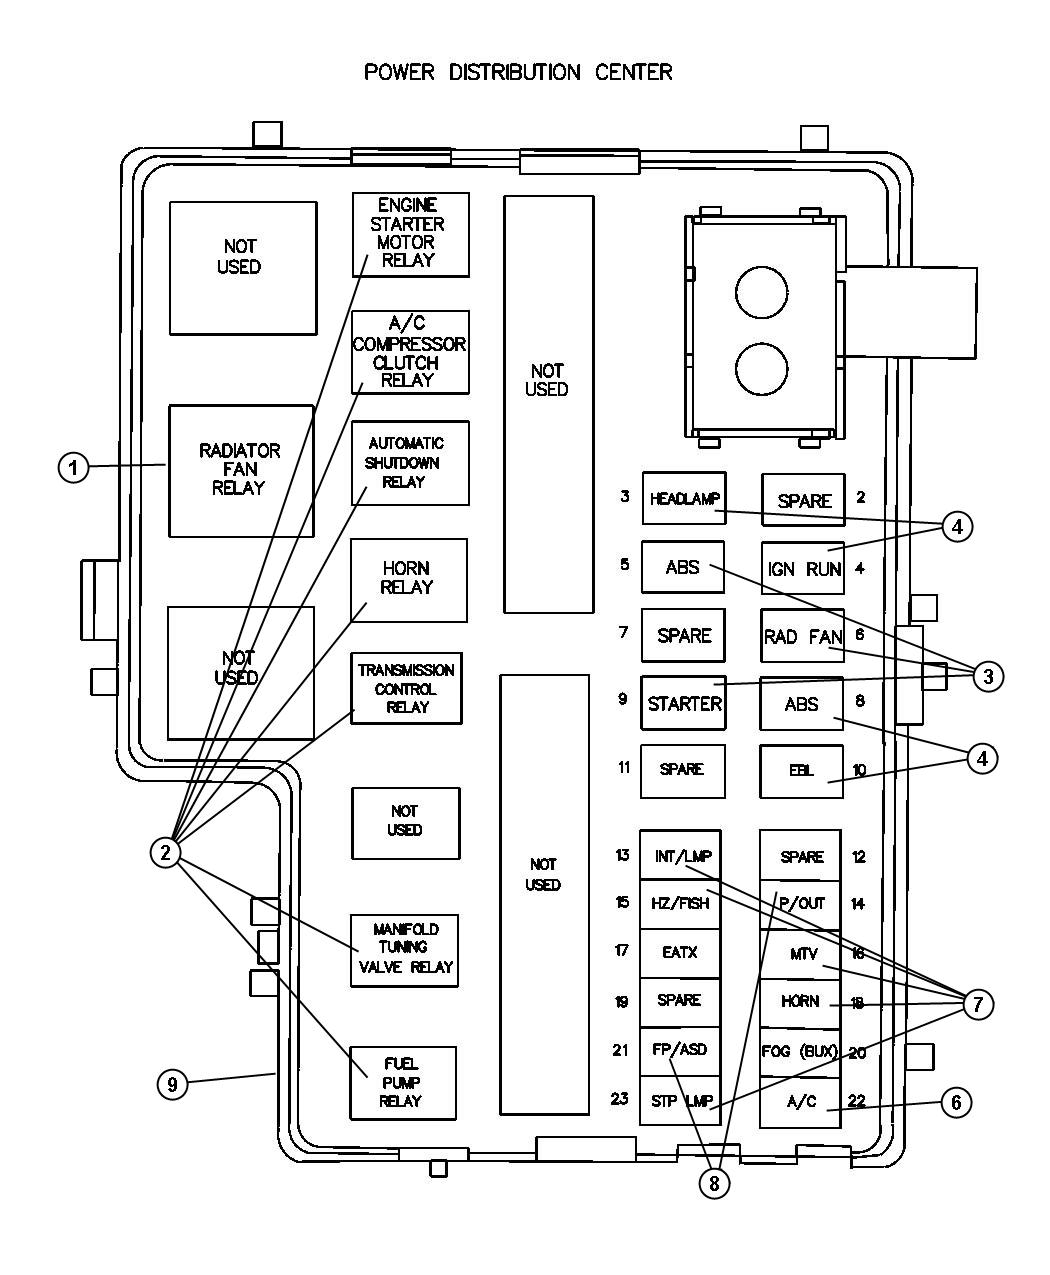 02 Dodge Dakota Fuse Box Diagram Wiring Library 2000 Dodge Dakota  Electrical Schematic 2000 Dodge Dakota Fog Light Wiring Diagram